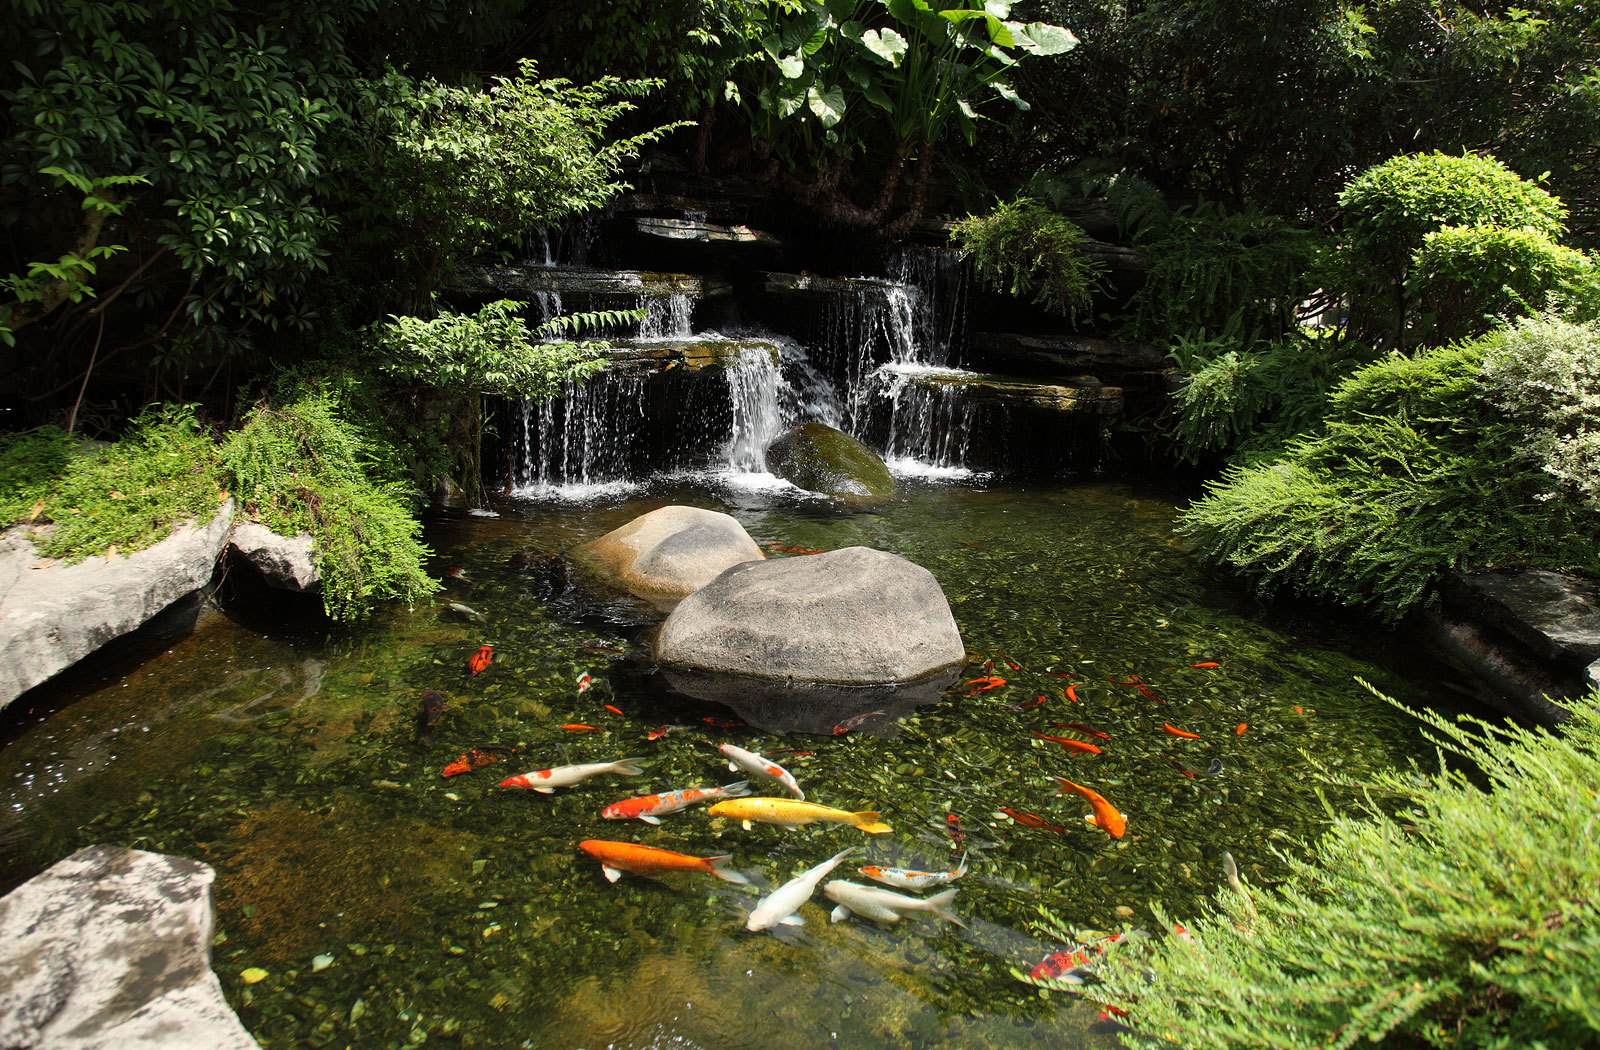 Albany plattsburgh burlington vt outdoor water gardens for Koi pool water gardens cleveleys